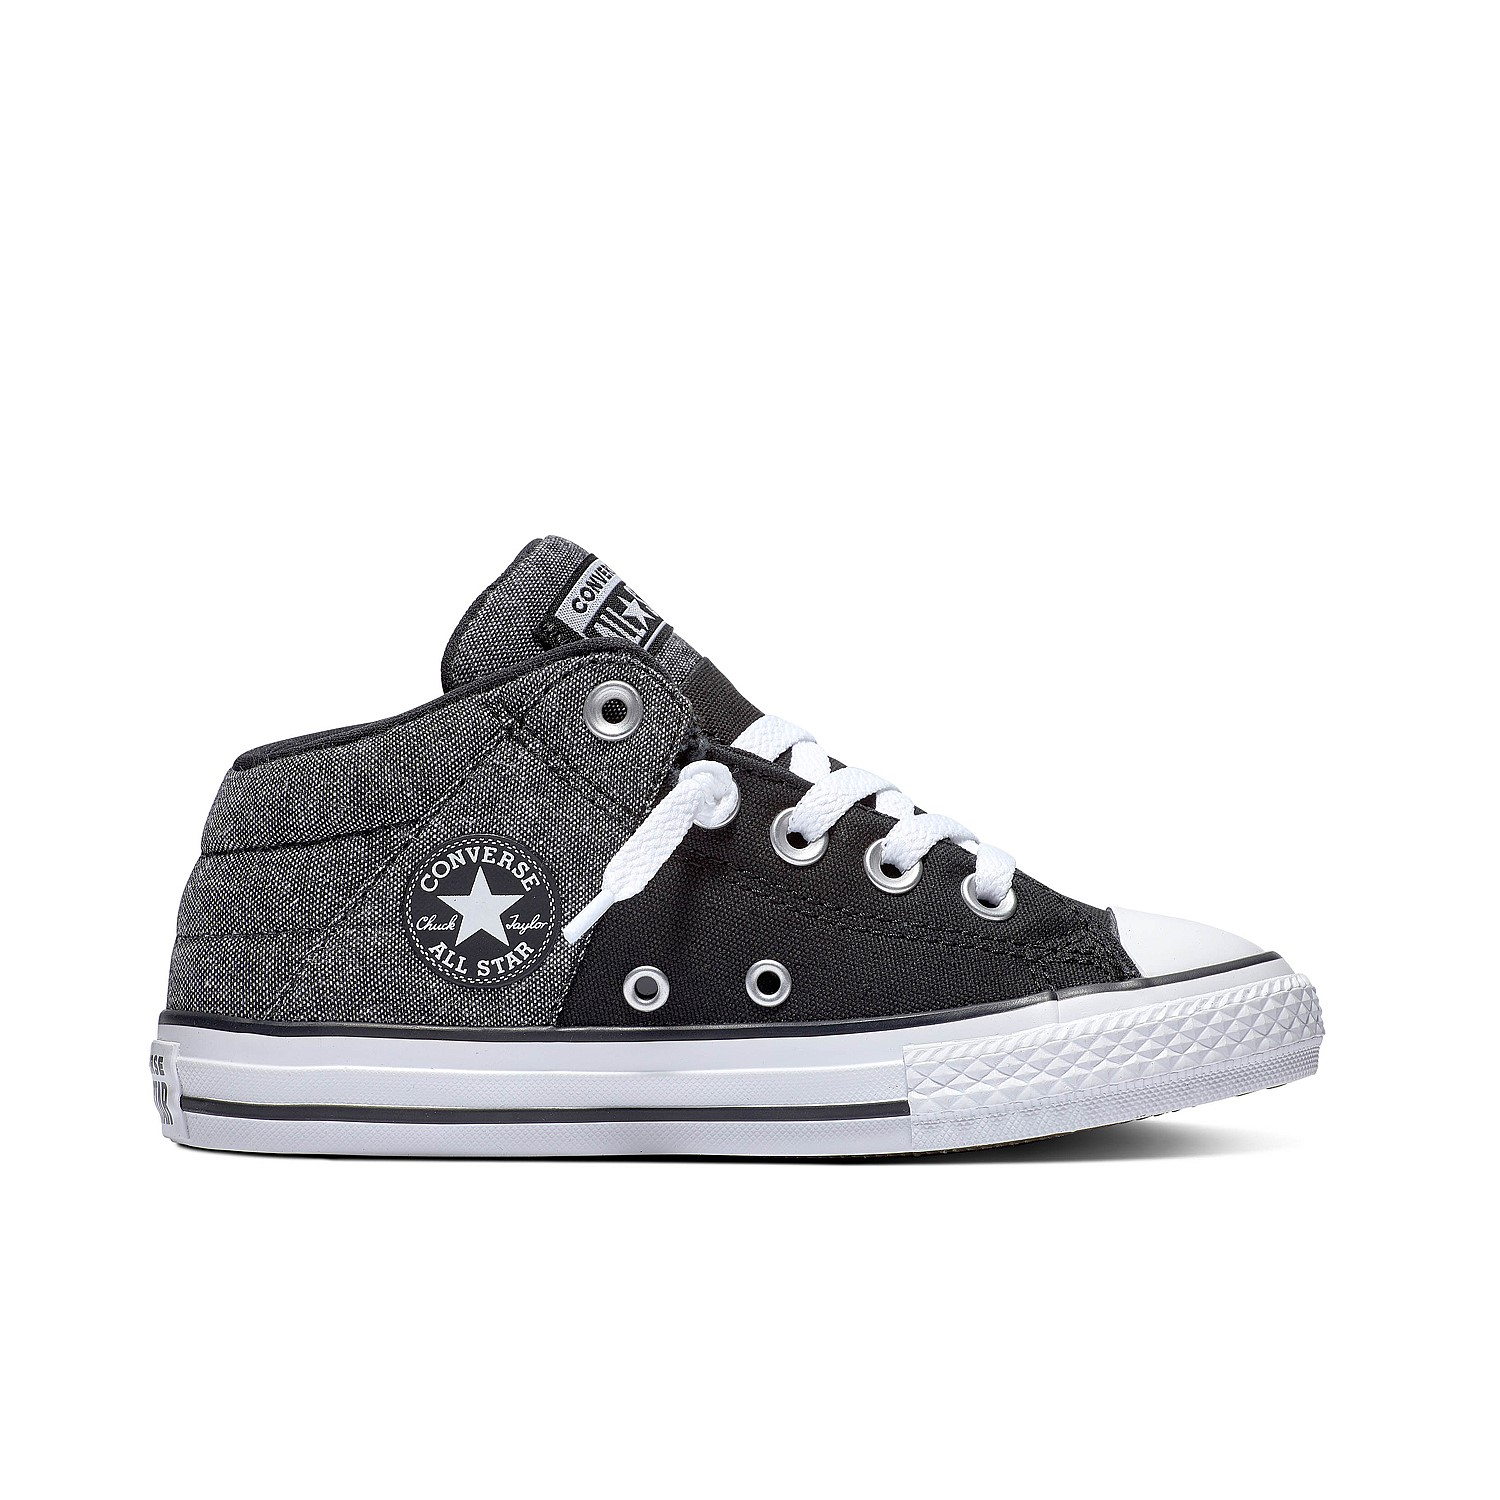 46a3babd18e7 Chuck Taylor All Star Axel Mid Kids